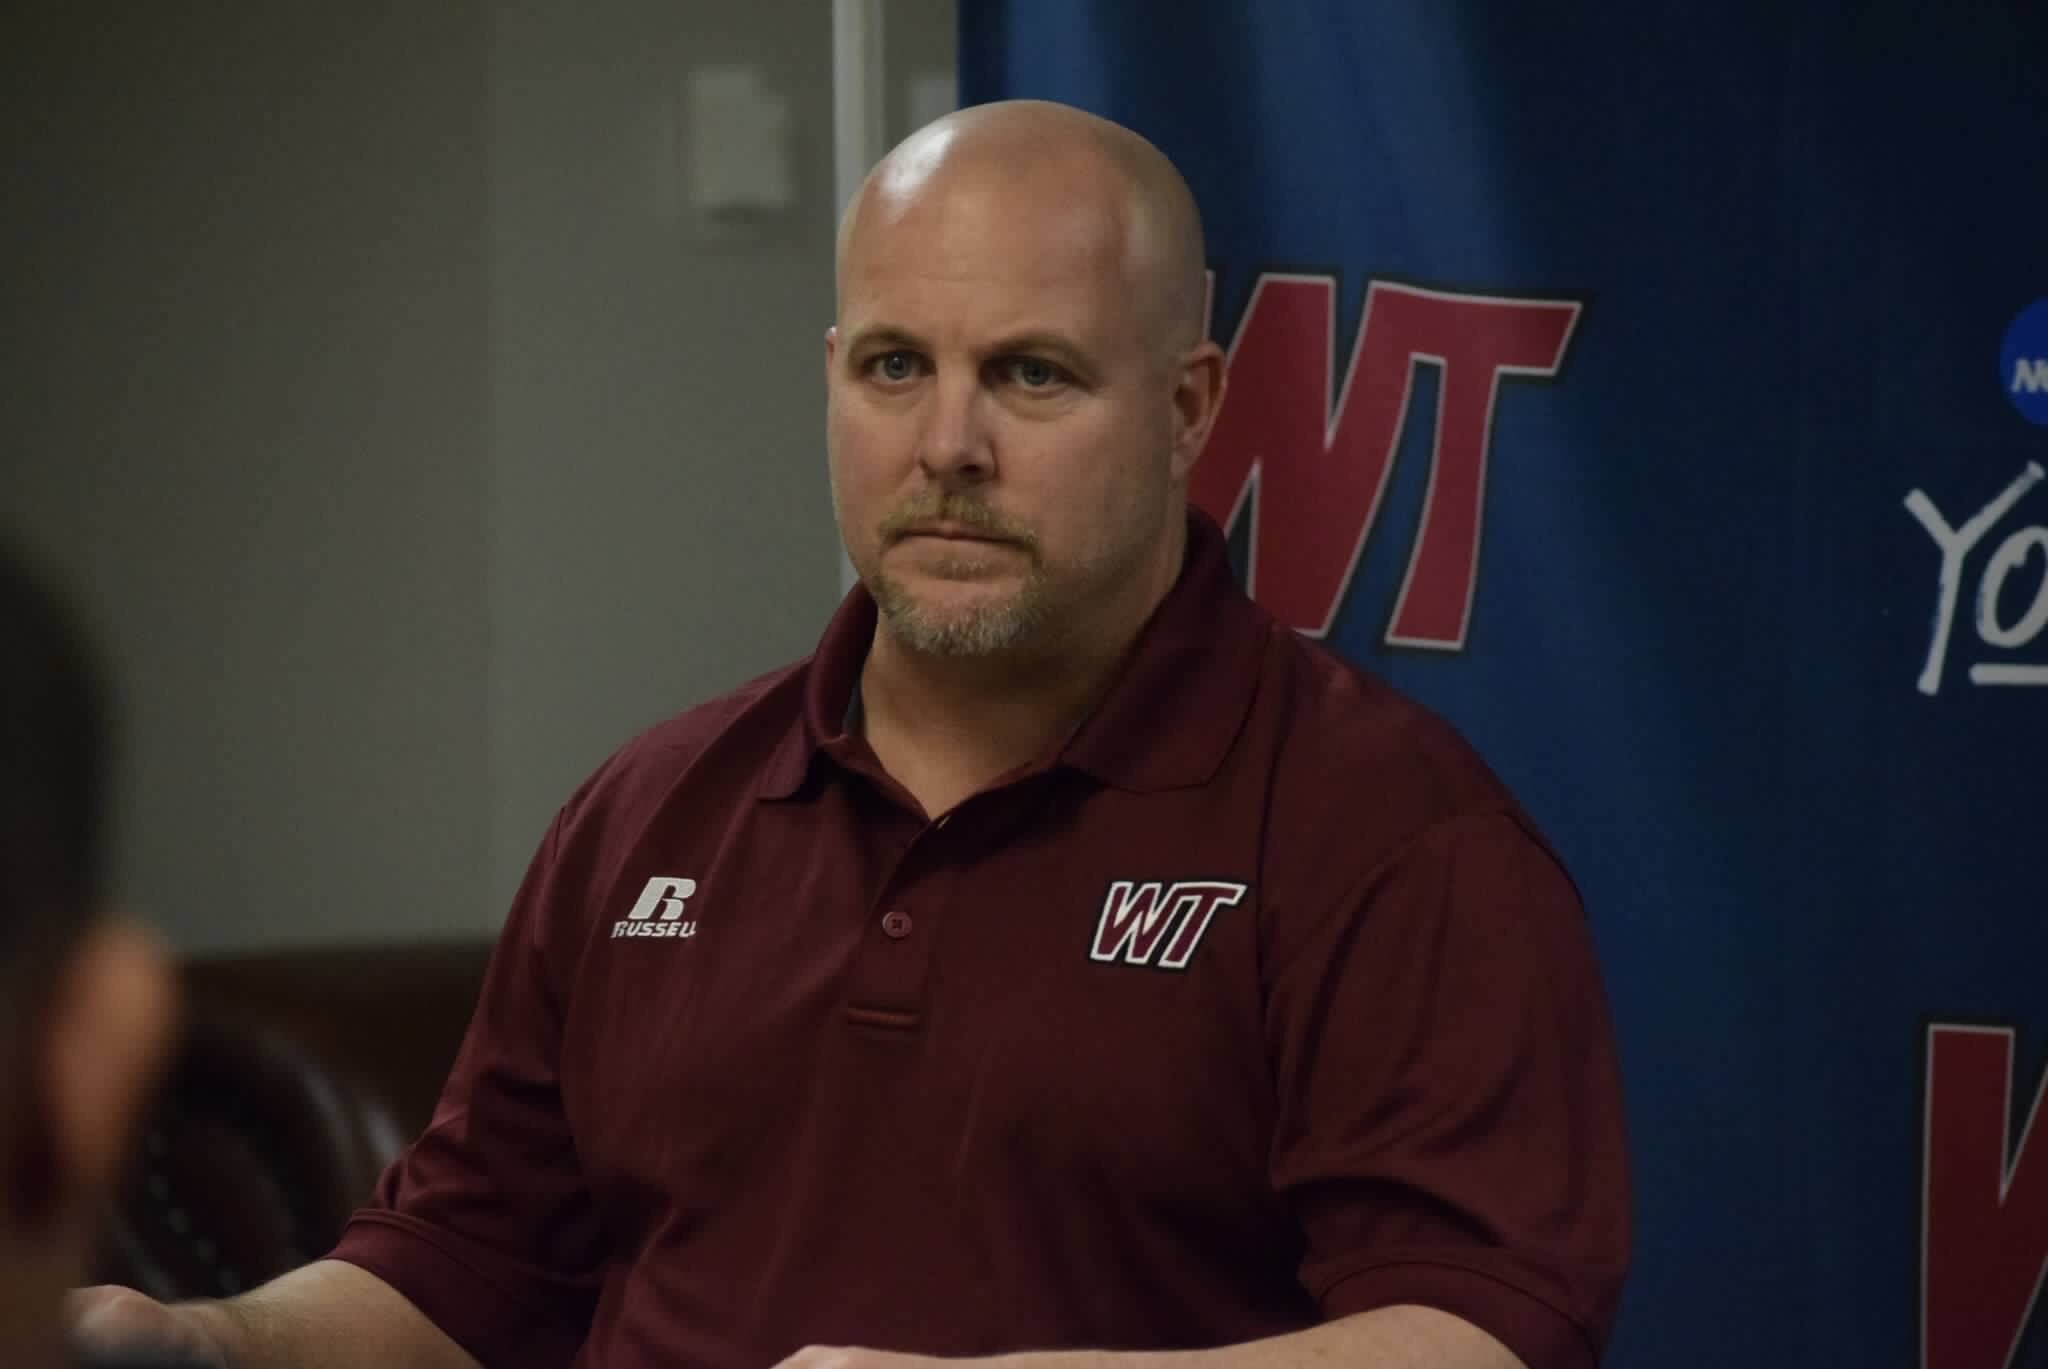 West Texas A&M head football coach Hunter Hughes discusses the recruiting class on Feb. 1 in the Buffalo Room at the First United Bank Center.